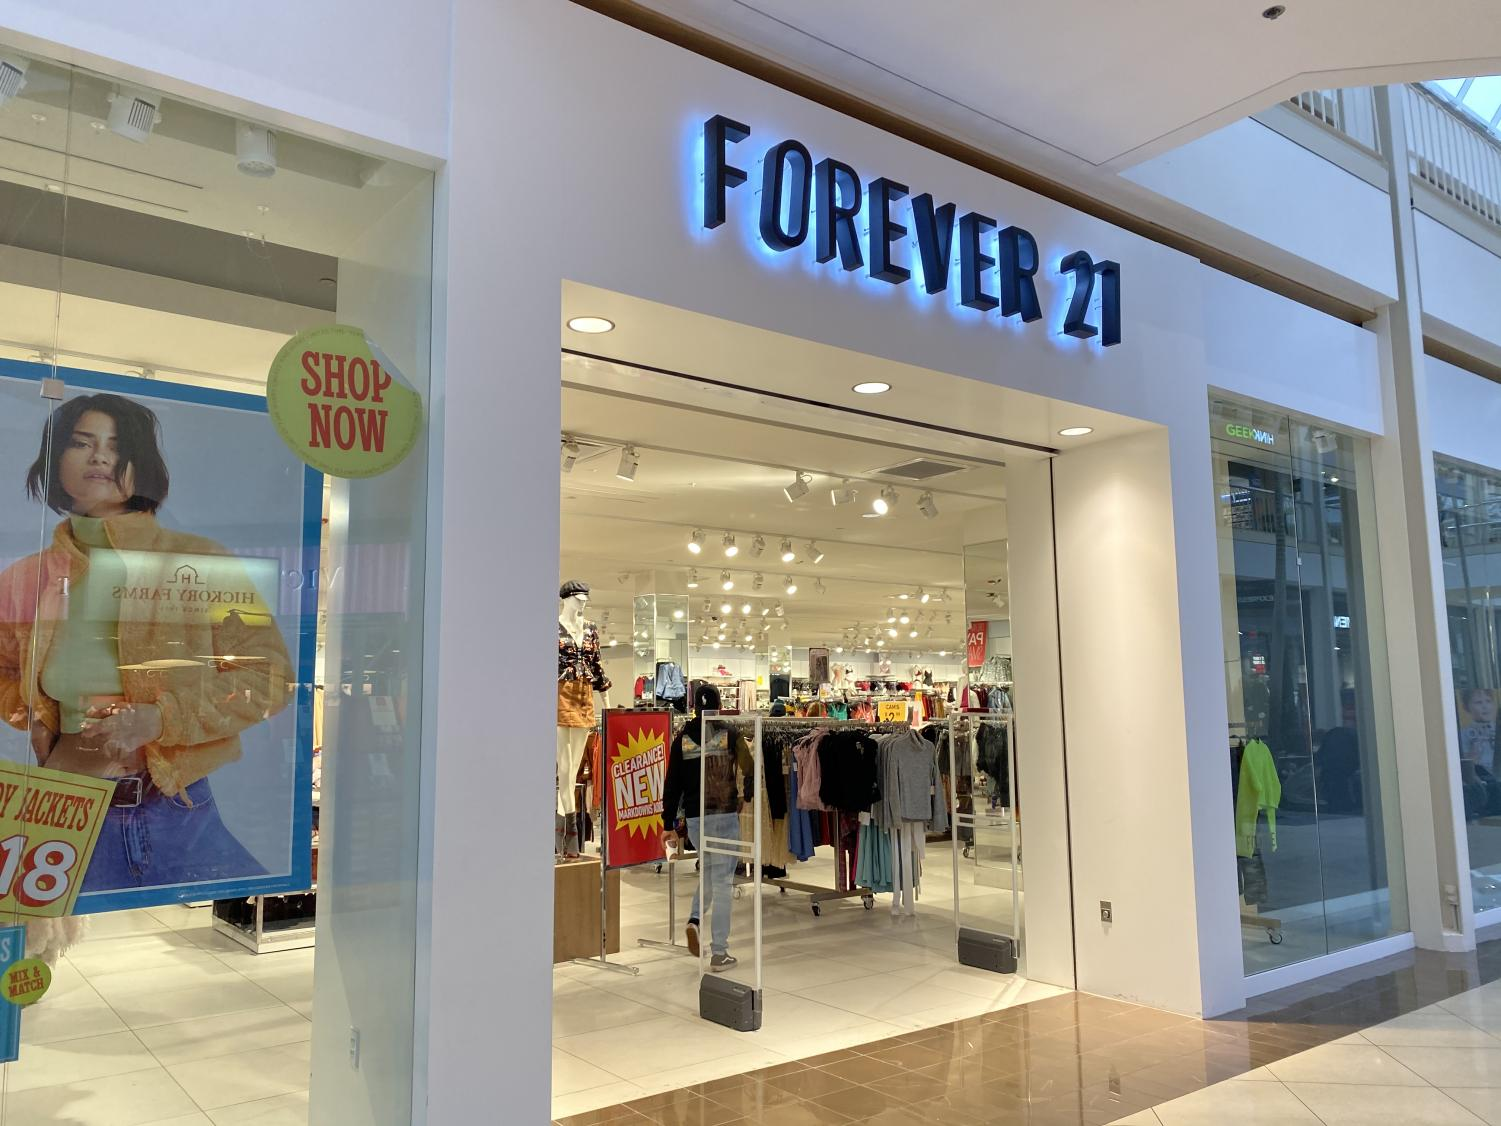 Forever 21 entrance at the Hulen mall, still open and operating after bankruptcy filing.